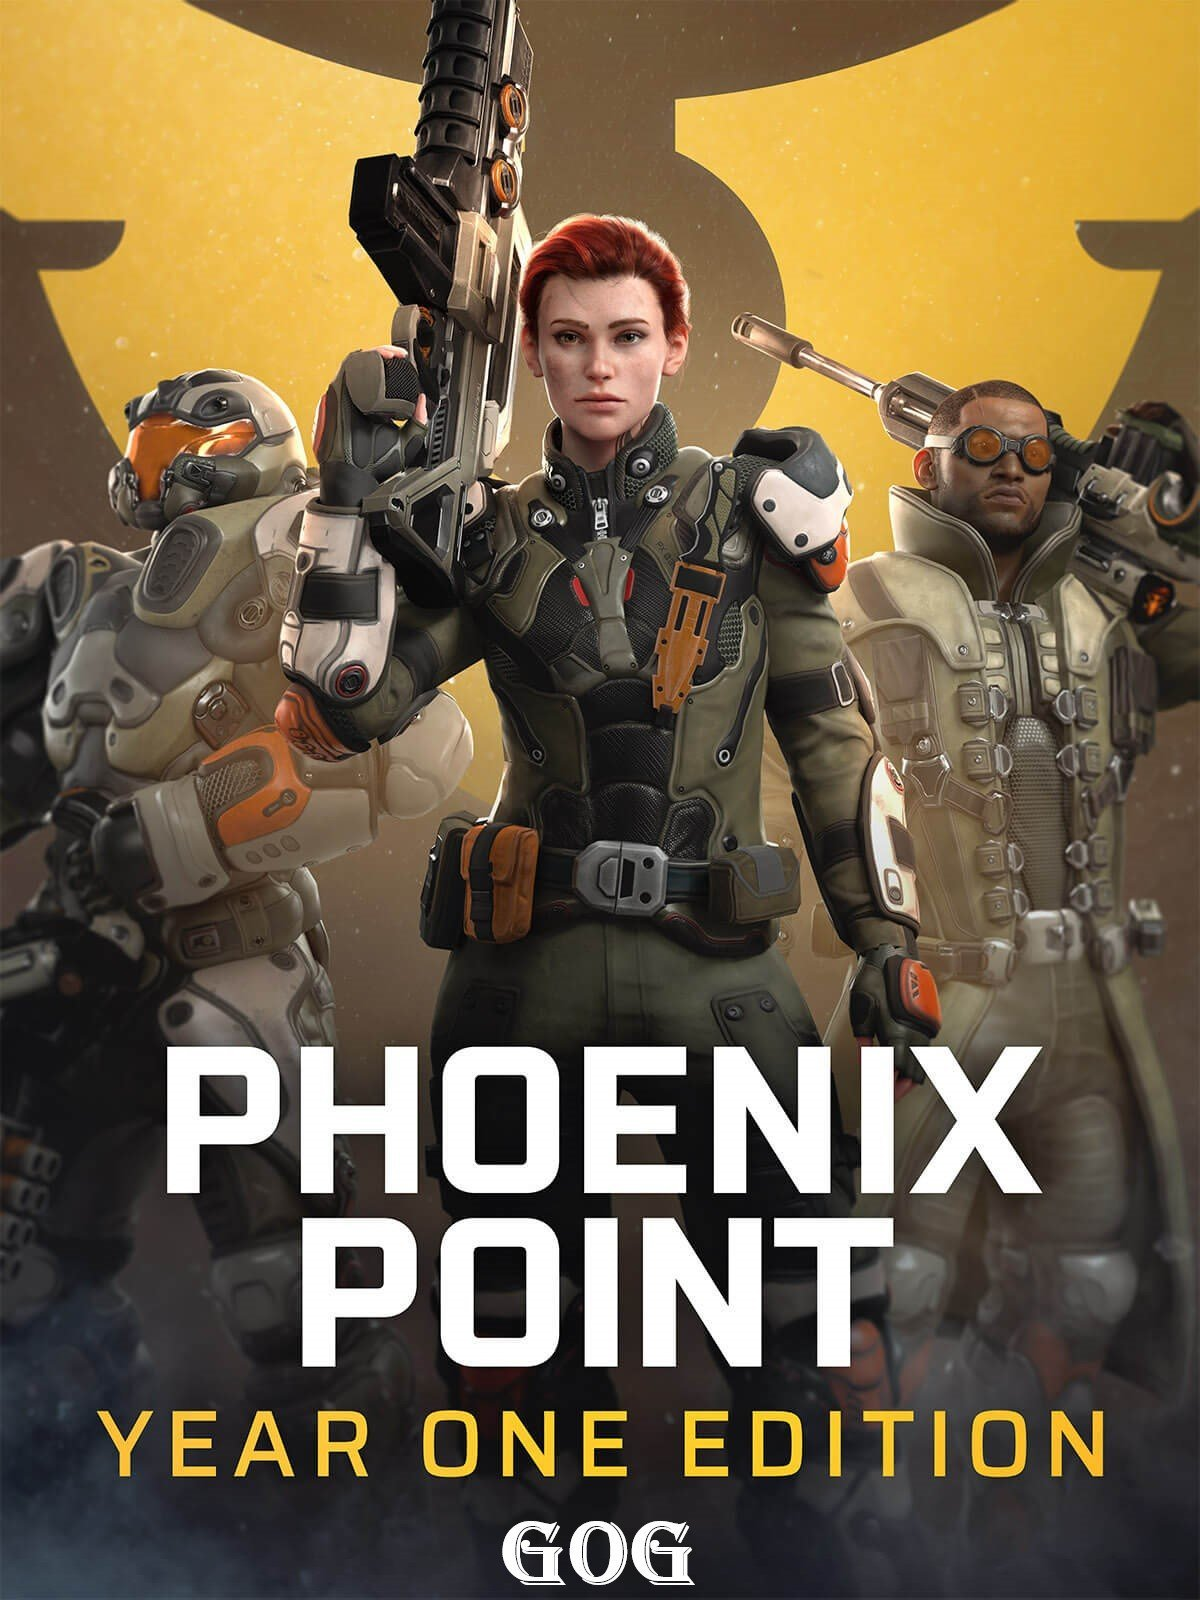 Обложка к игре Phoenix Point: Year One Edition v.1.9.4 [GOG] (2019) Лицензия